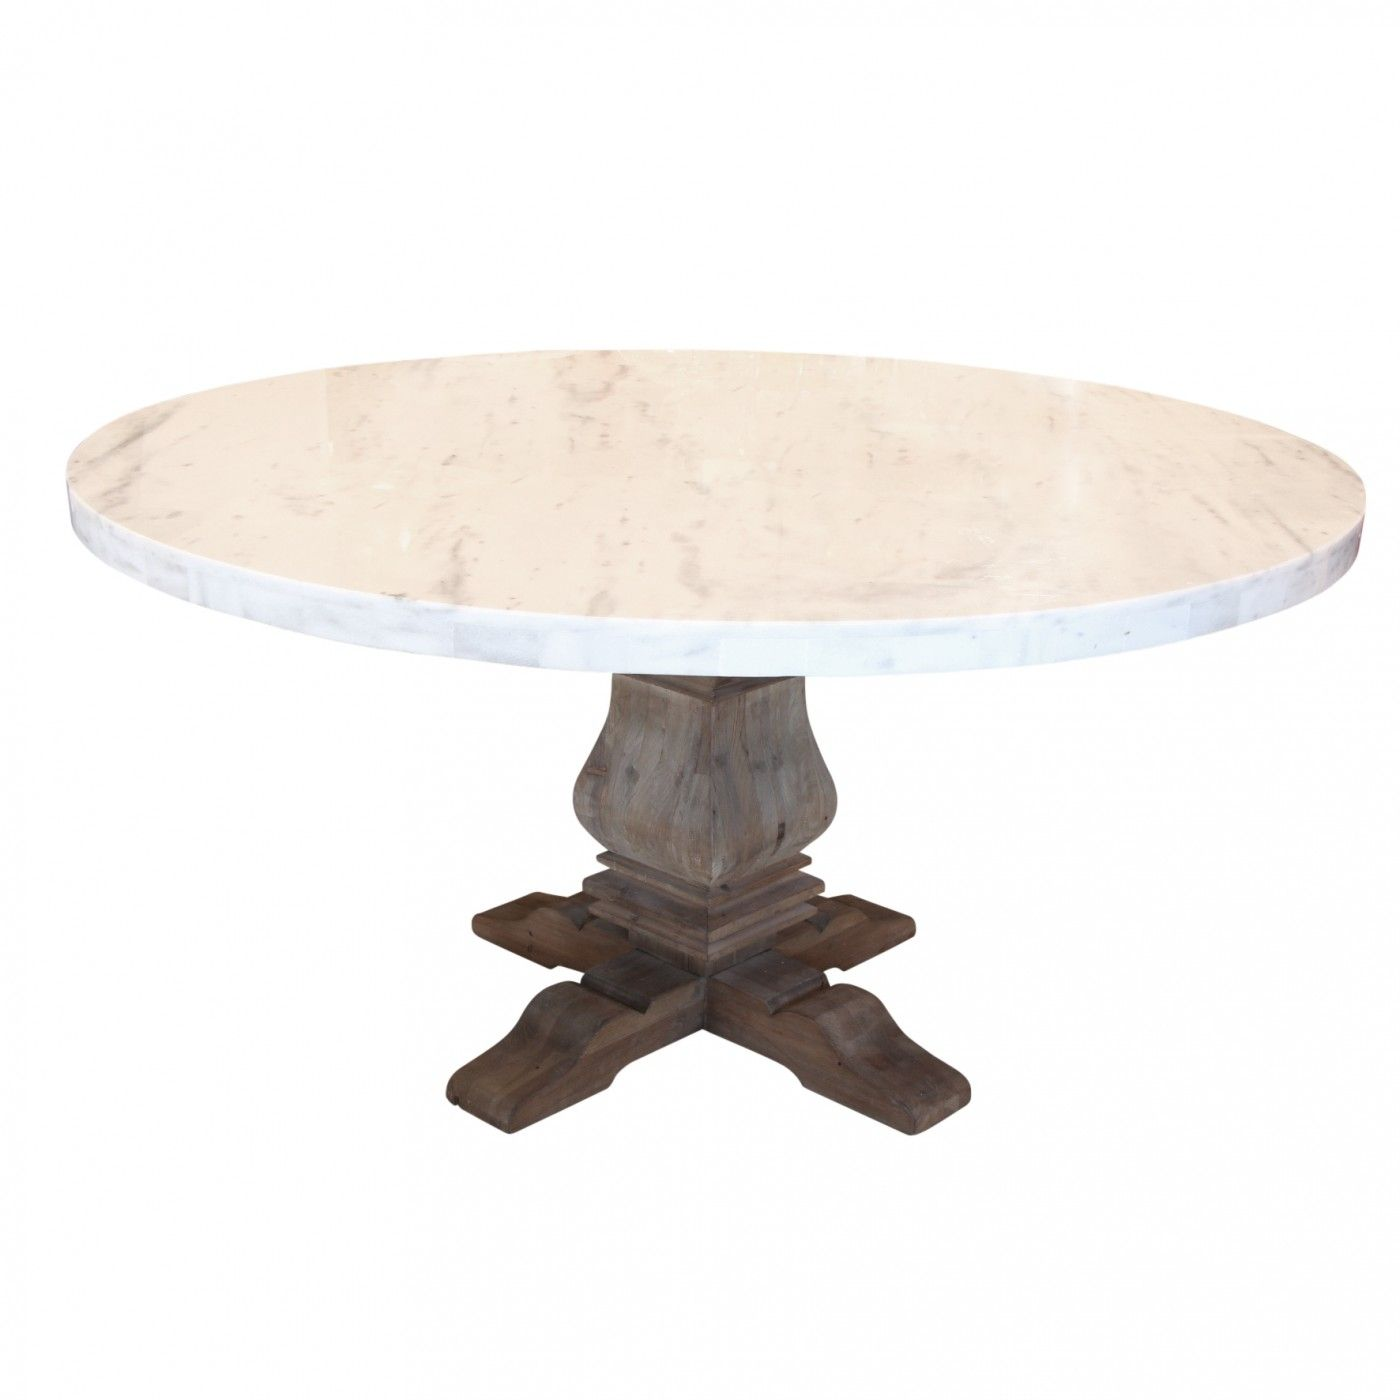 Lyon Round Marble Top Dining Table Breakfast Nook Ideas - Round marble breakfast table